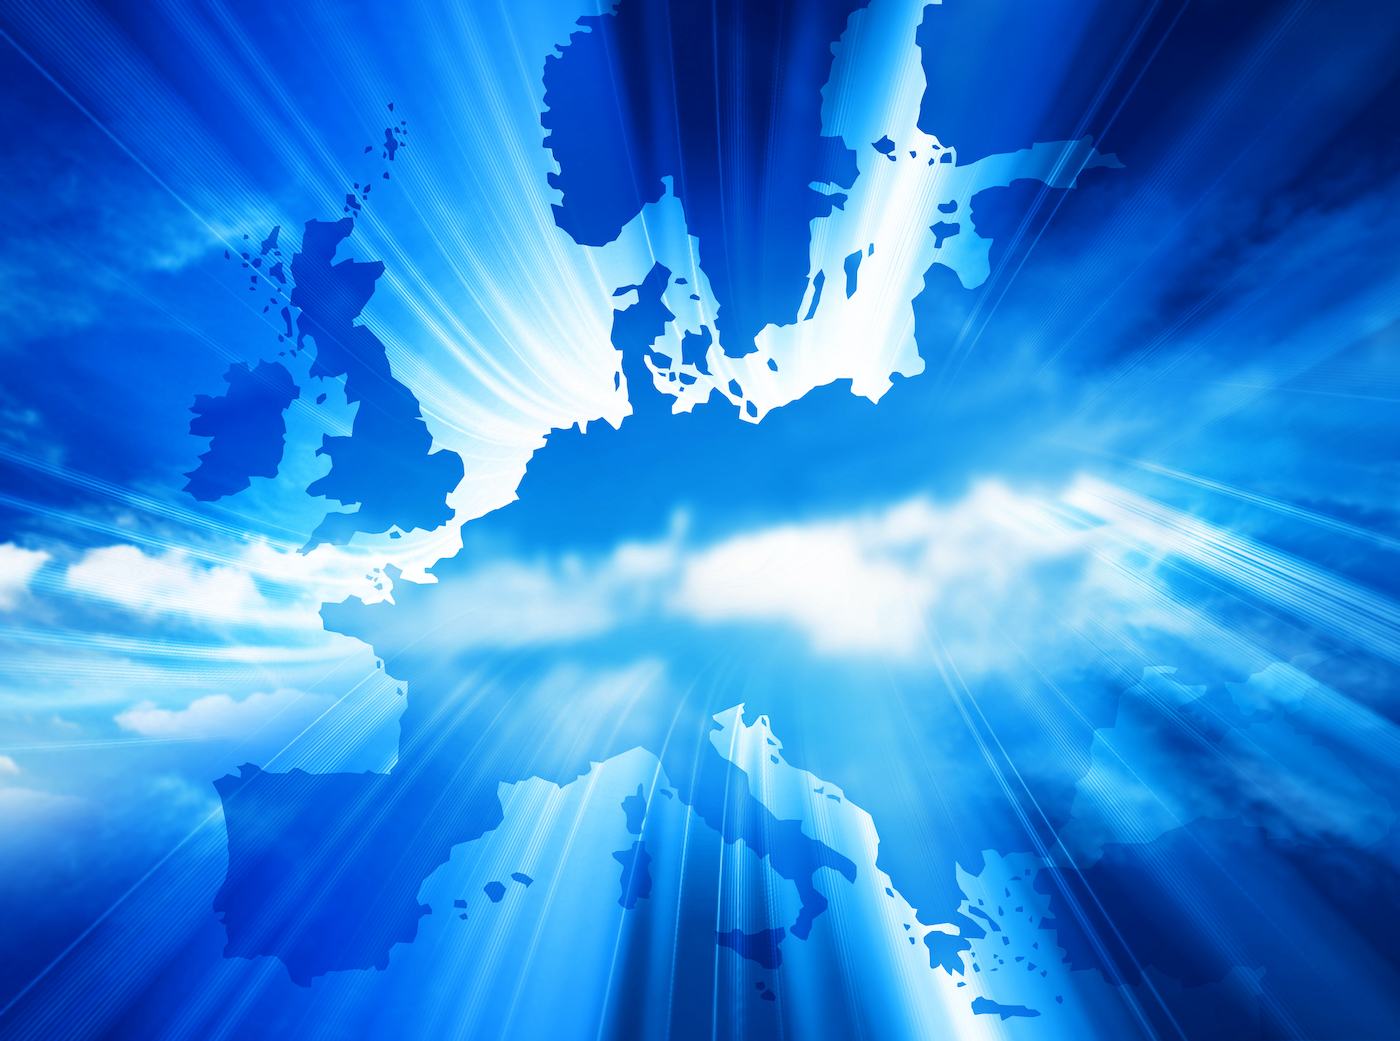 Map of Europe in blue with bright light through it